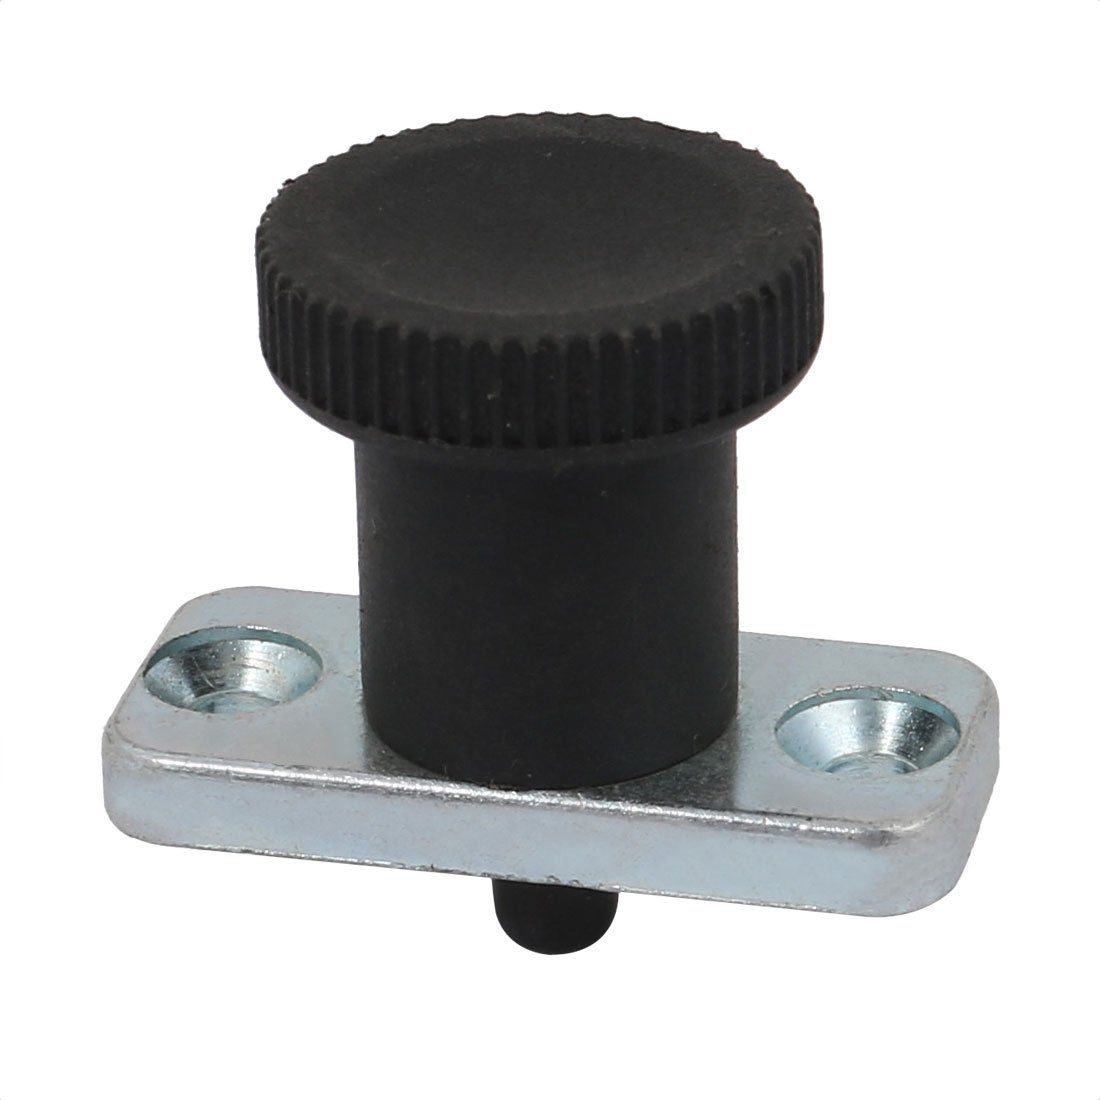 uxcell 6mm Pin Dia 6mm Pin Length Non Lock-Out Type Zinc Alloy Plate Mount Indexing Plunger